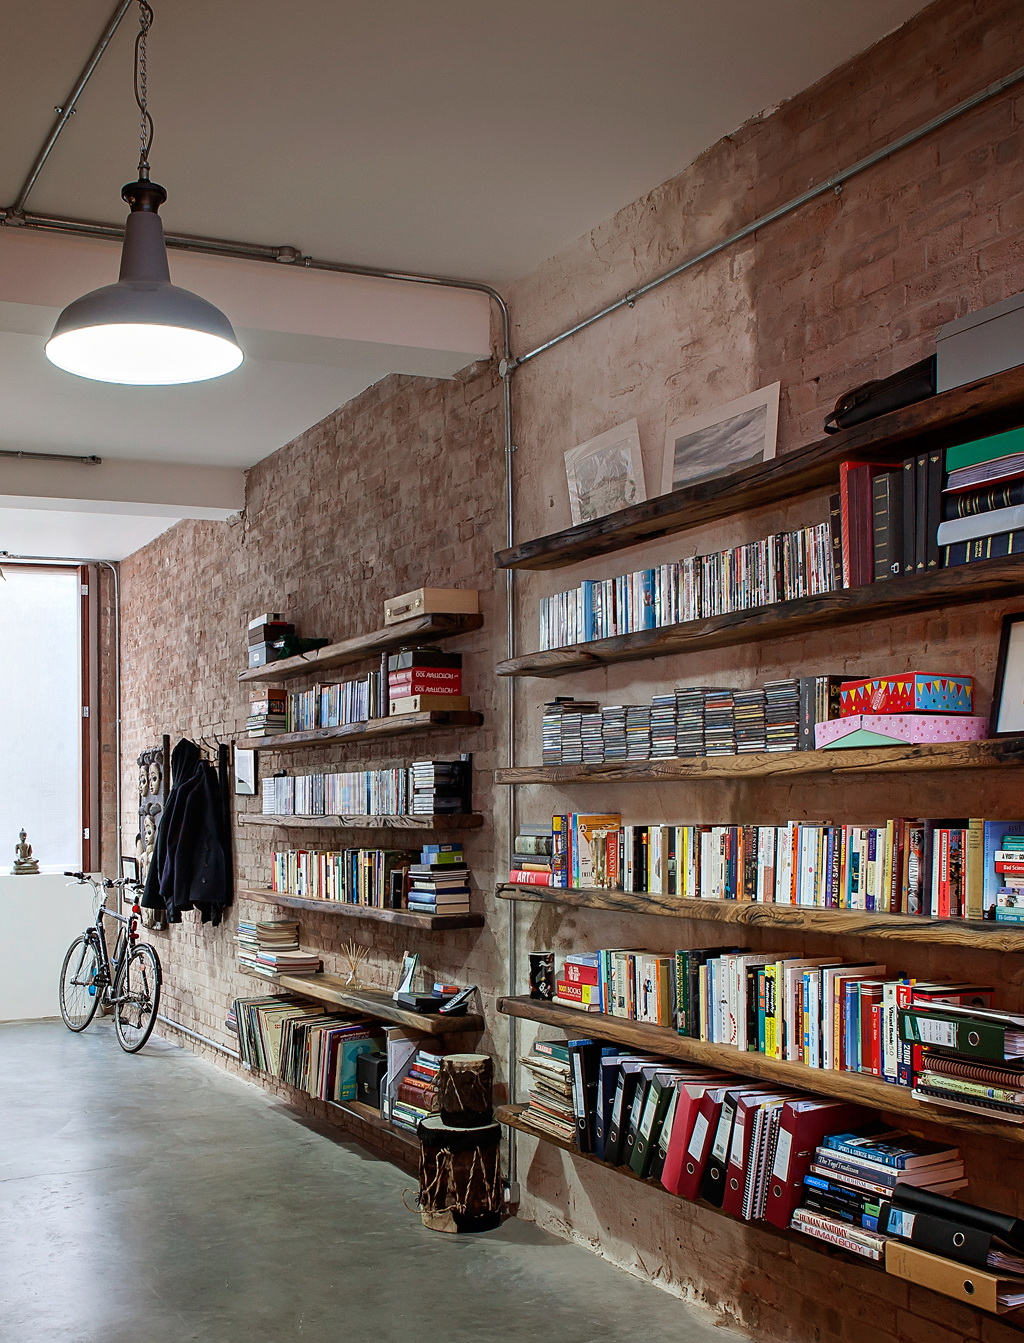 Chris-Dyson-Architects-Shoreditch-Warehouse-Conversion-6